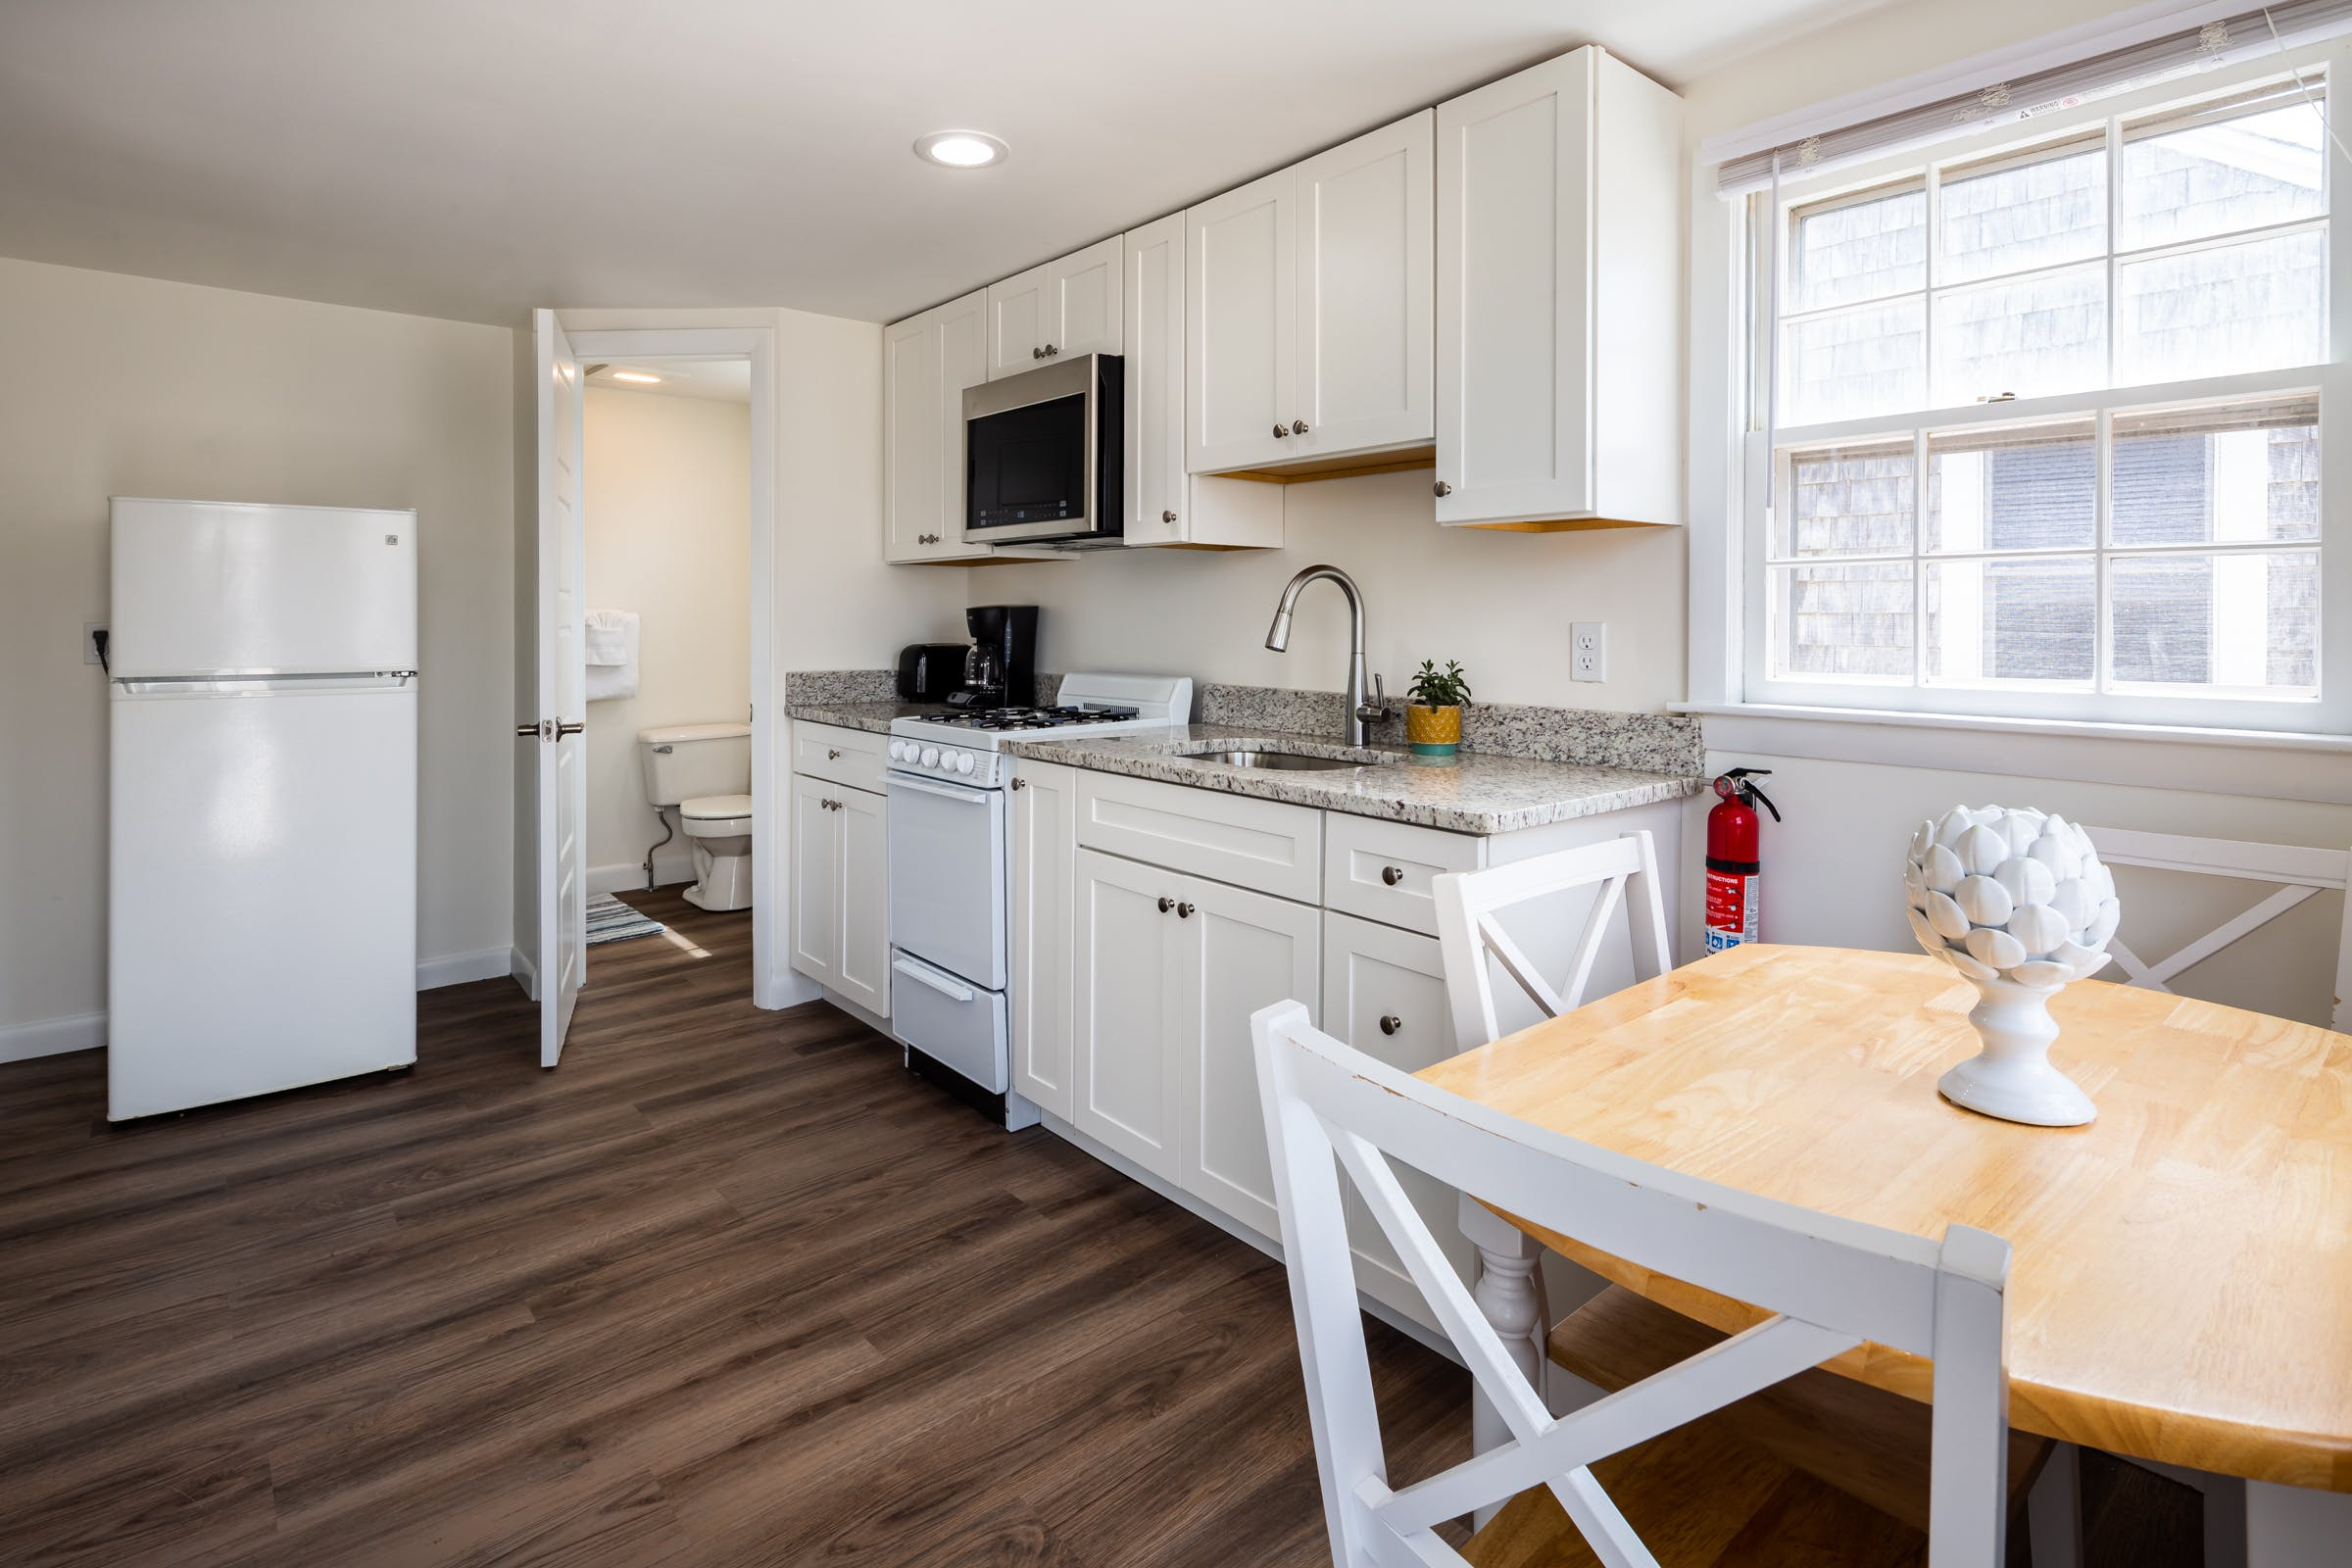 Truro Beach Cottages - Cottage #2 - kitchen